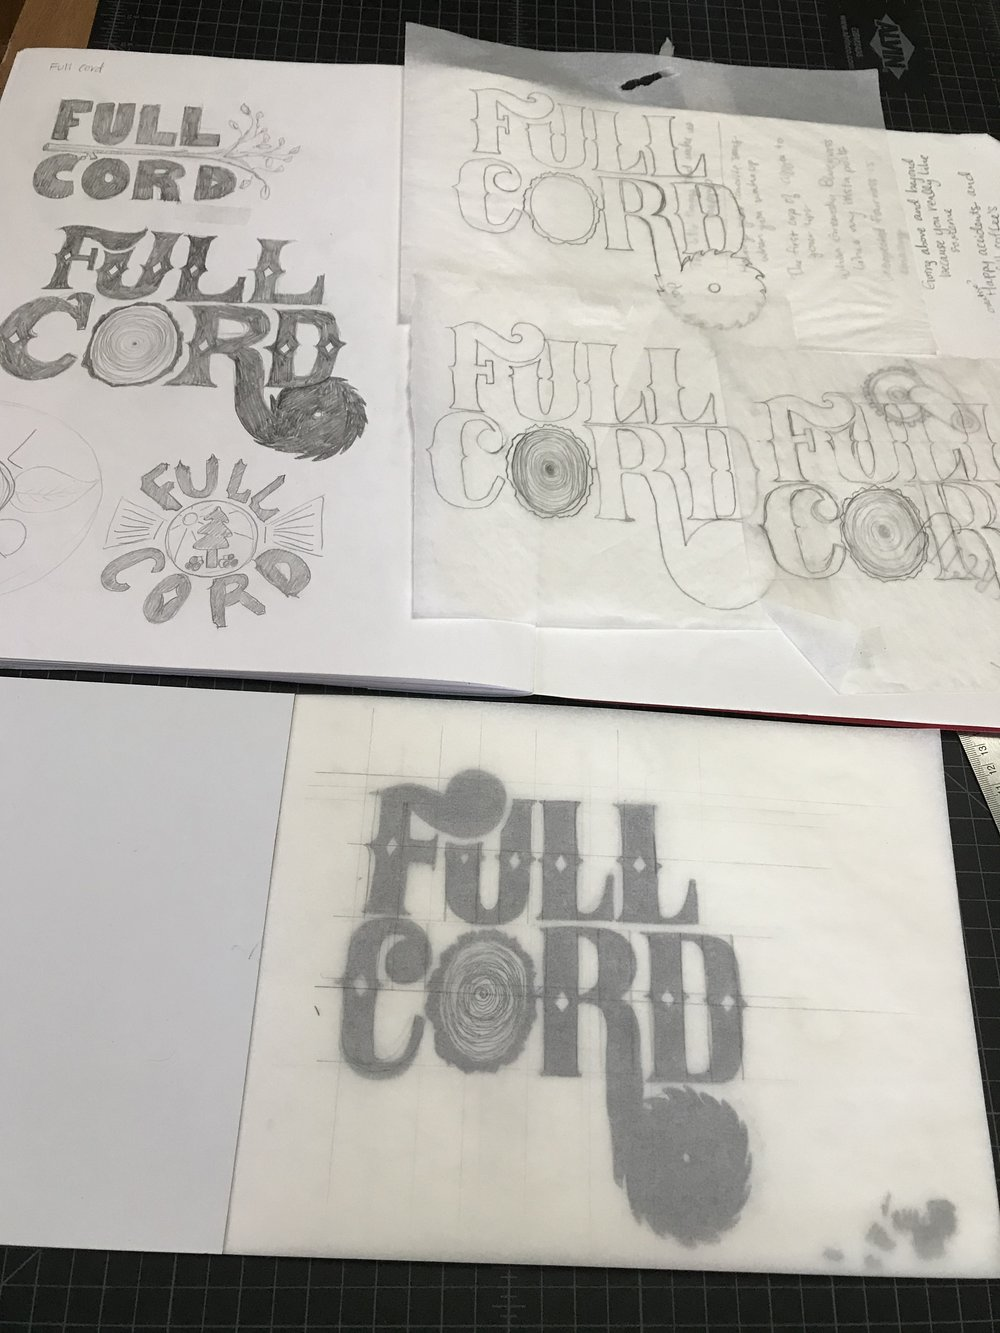 Process photo: upper left corner shows some of the first hand drawn ideas, and the rest of the images show the refinement process where I straightened out letters and spacing.